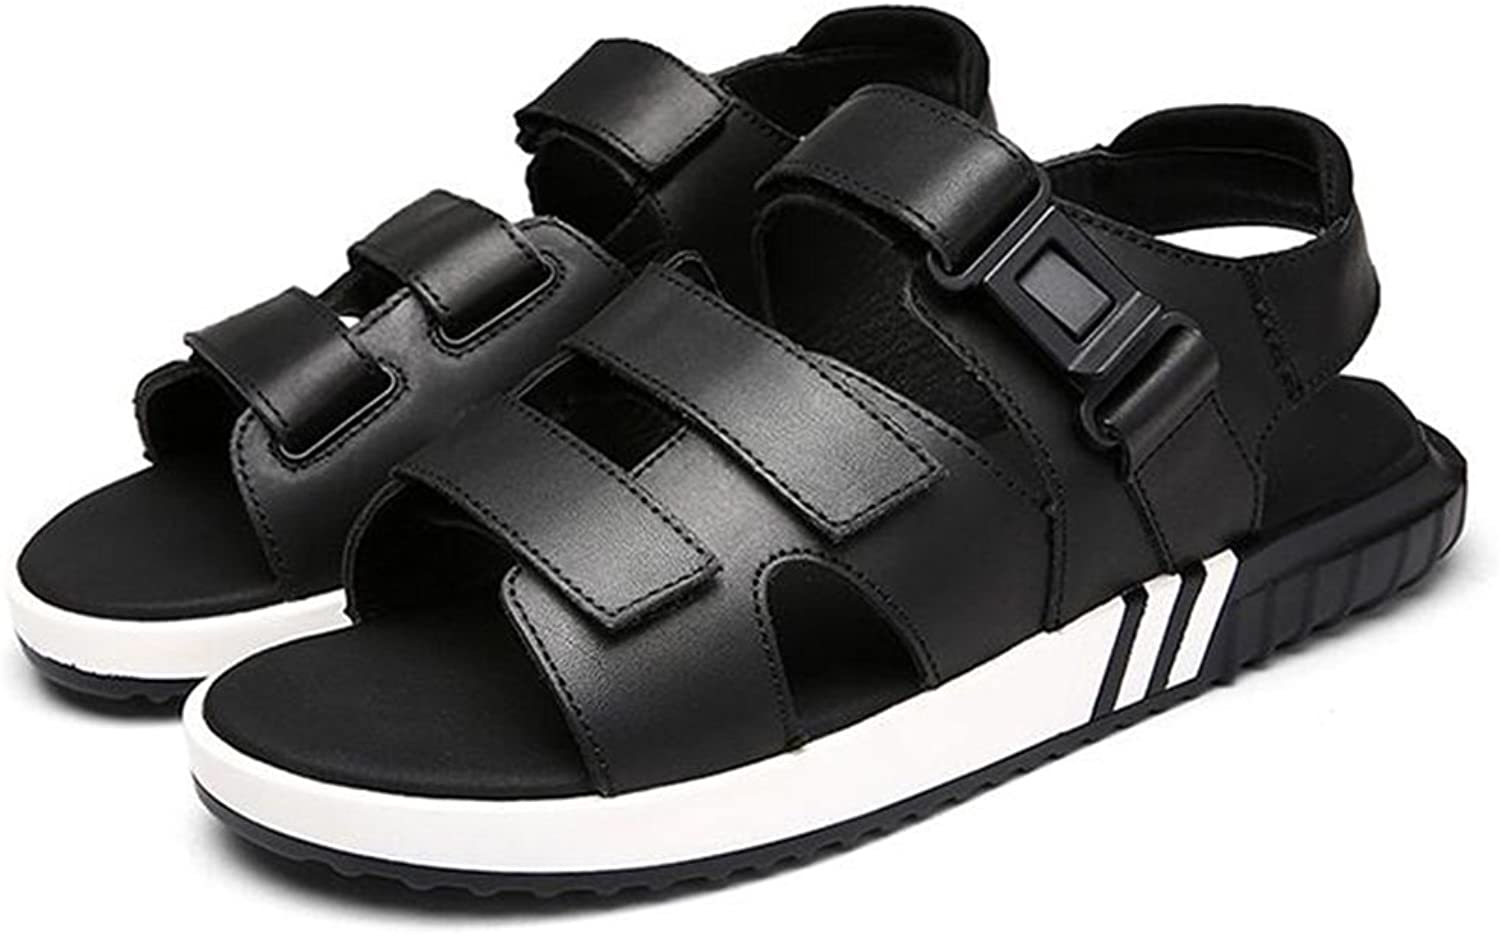 QIDI Sandals Summer Polyester Black Casual Non-slip Beach shoes (Size   EU44 UK10)